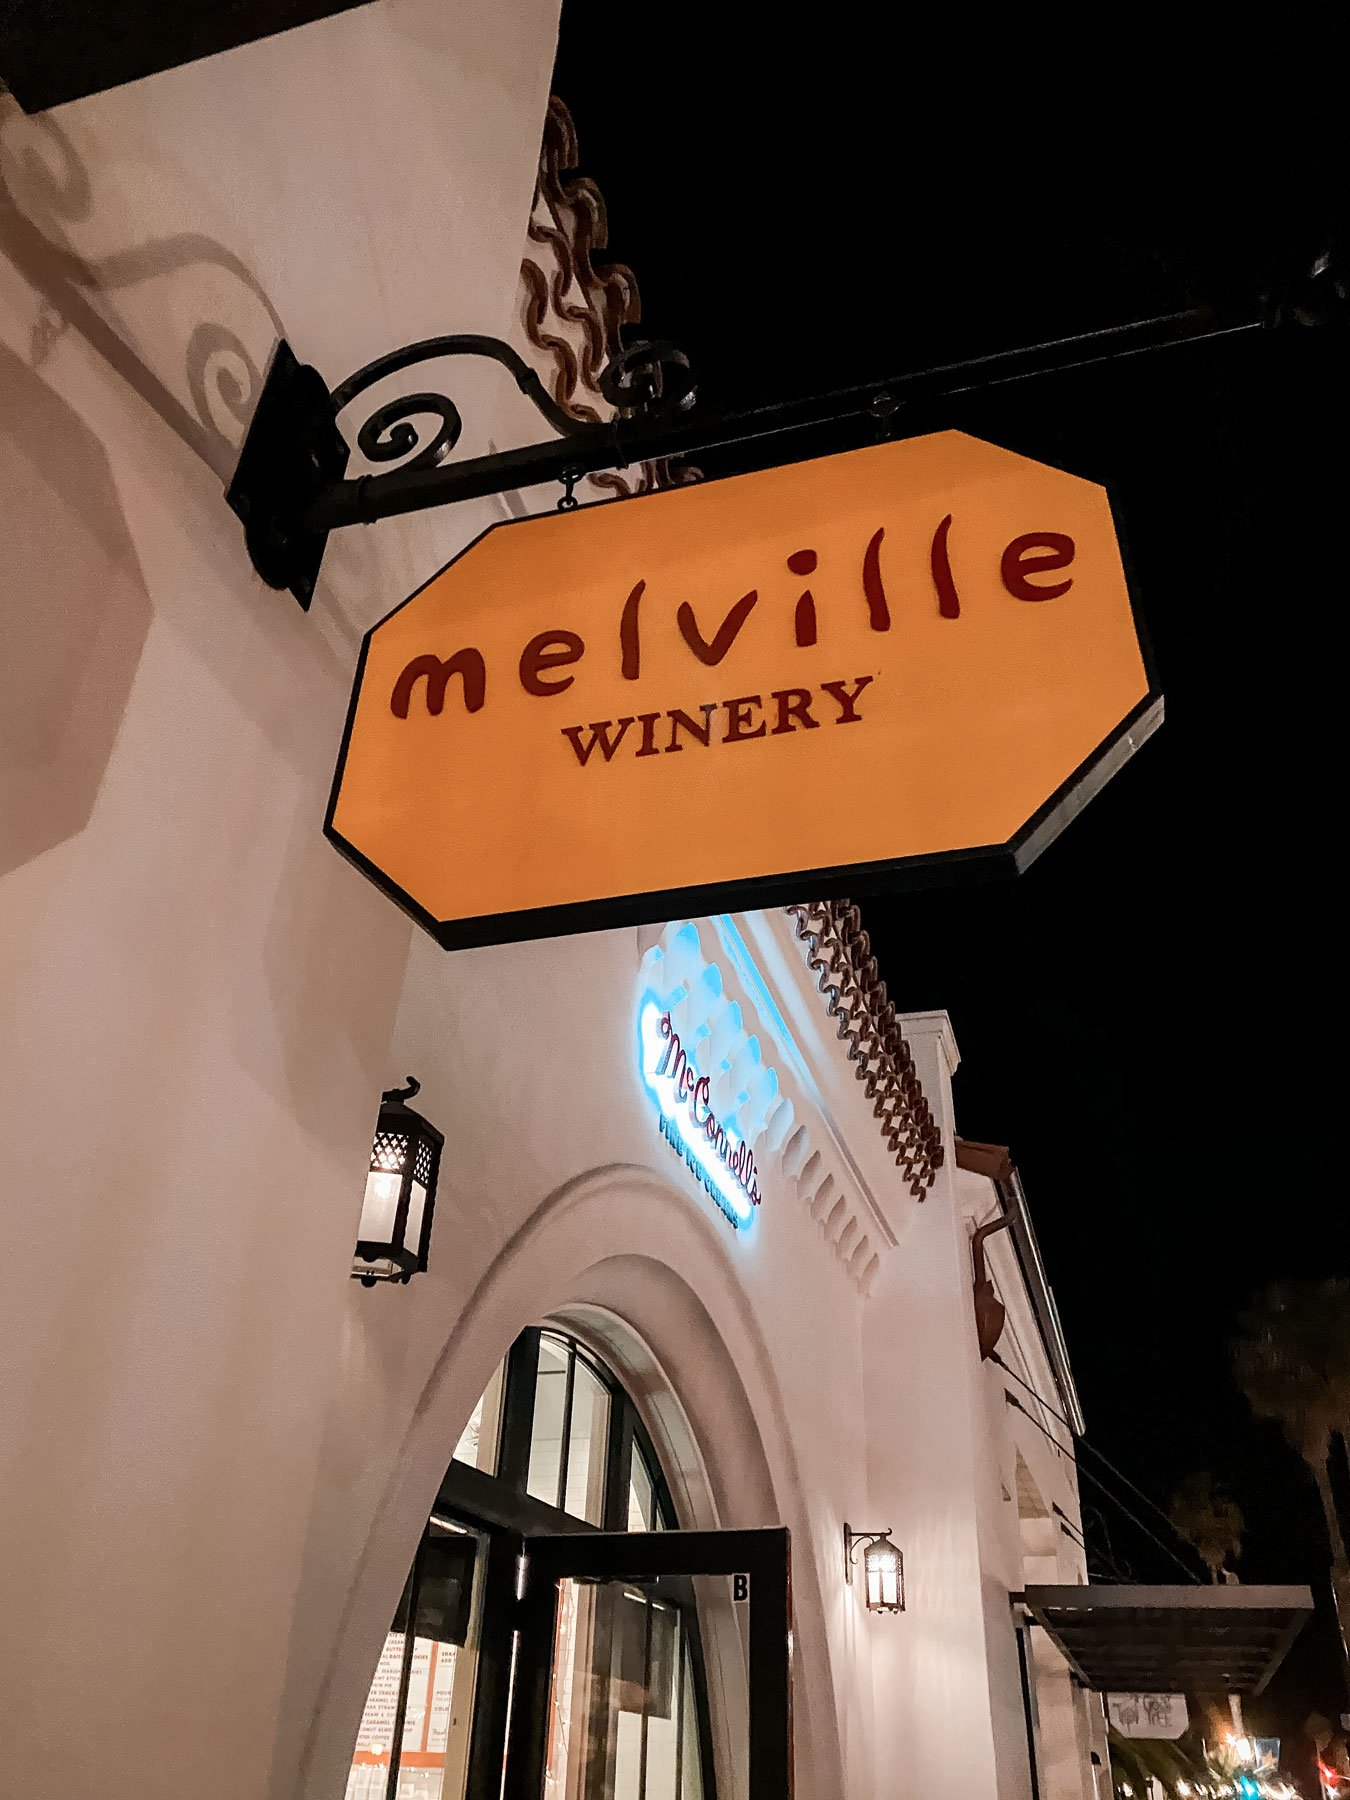 Melville winery tasting room Santa Barbara